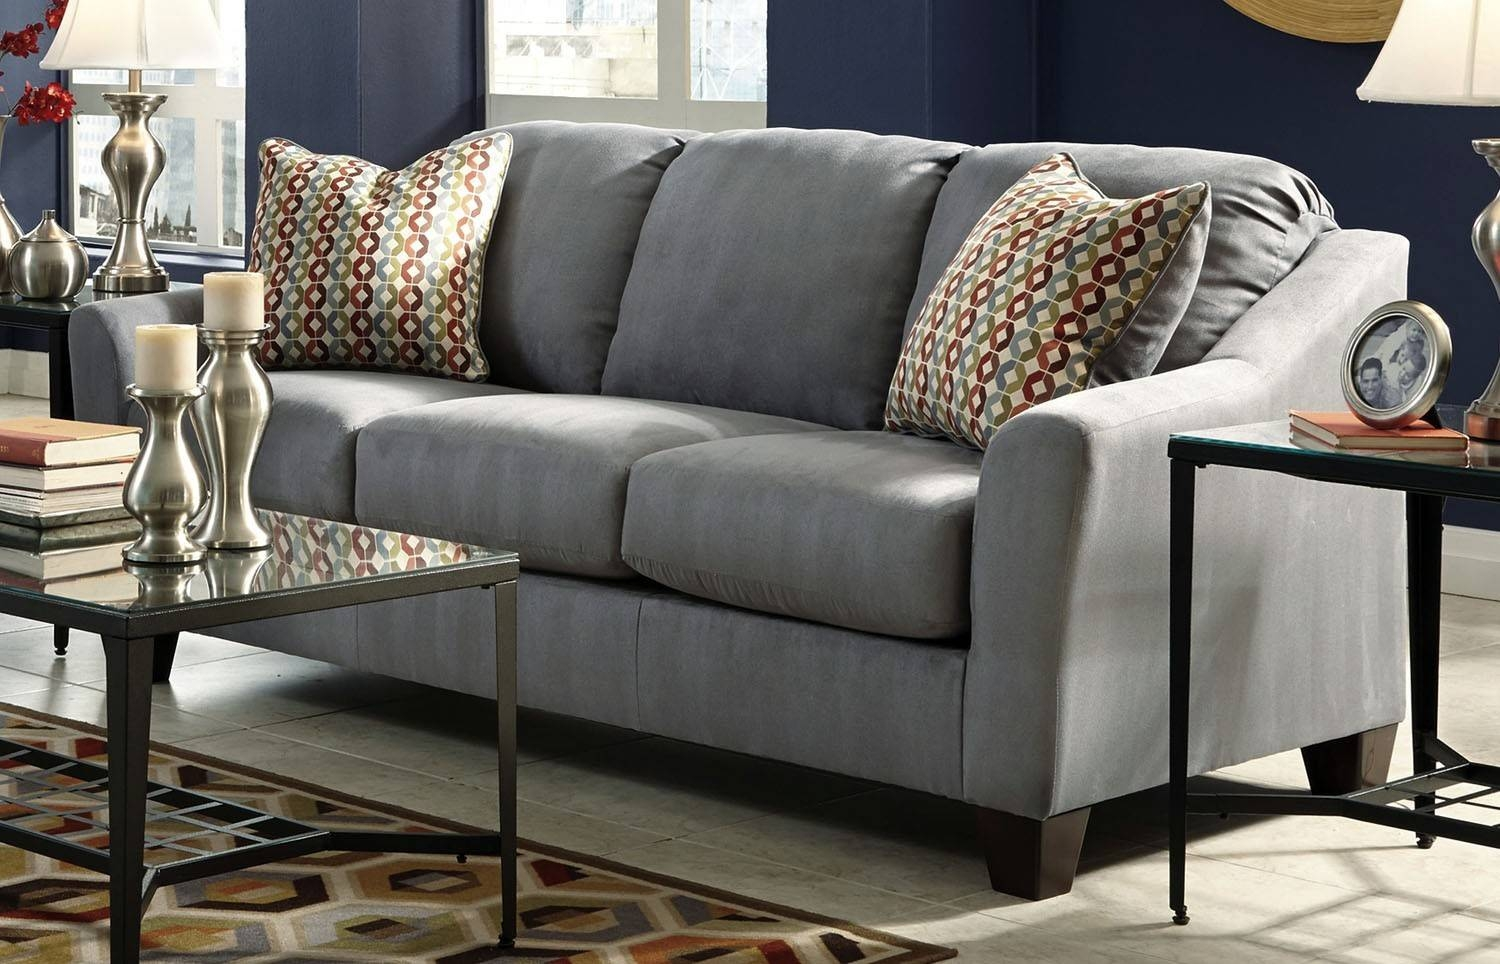 Hannin-Lagoon Sofa - Ashley Furniture | Orange County, Ca with regard to Sofa Orange County (Image 7 of 25)